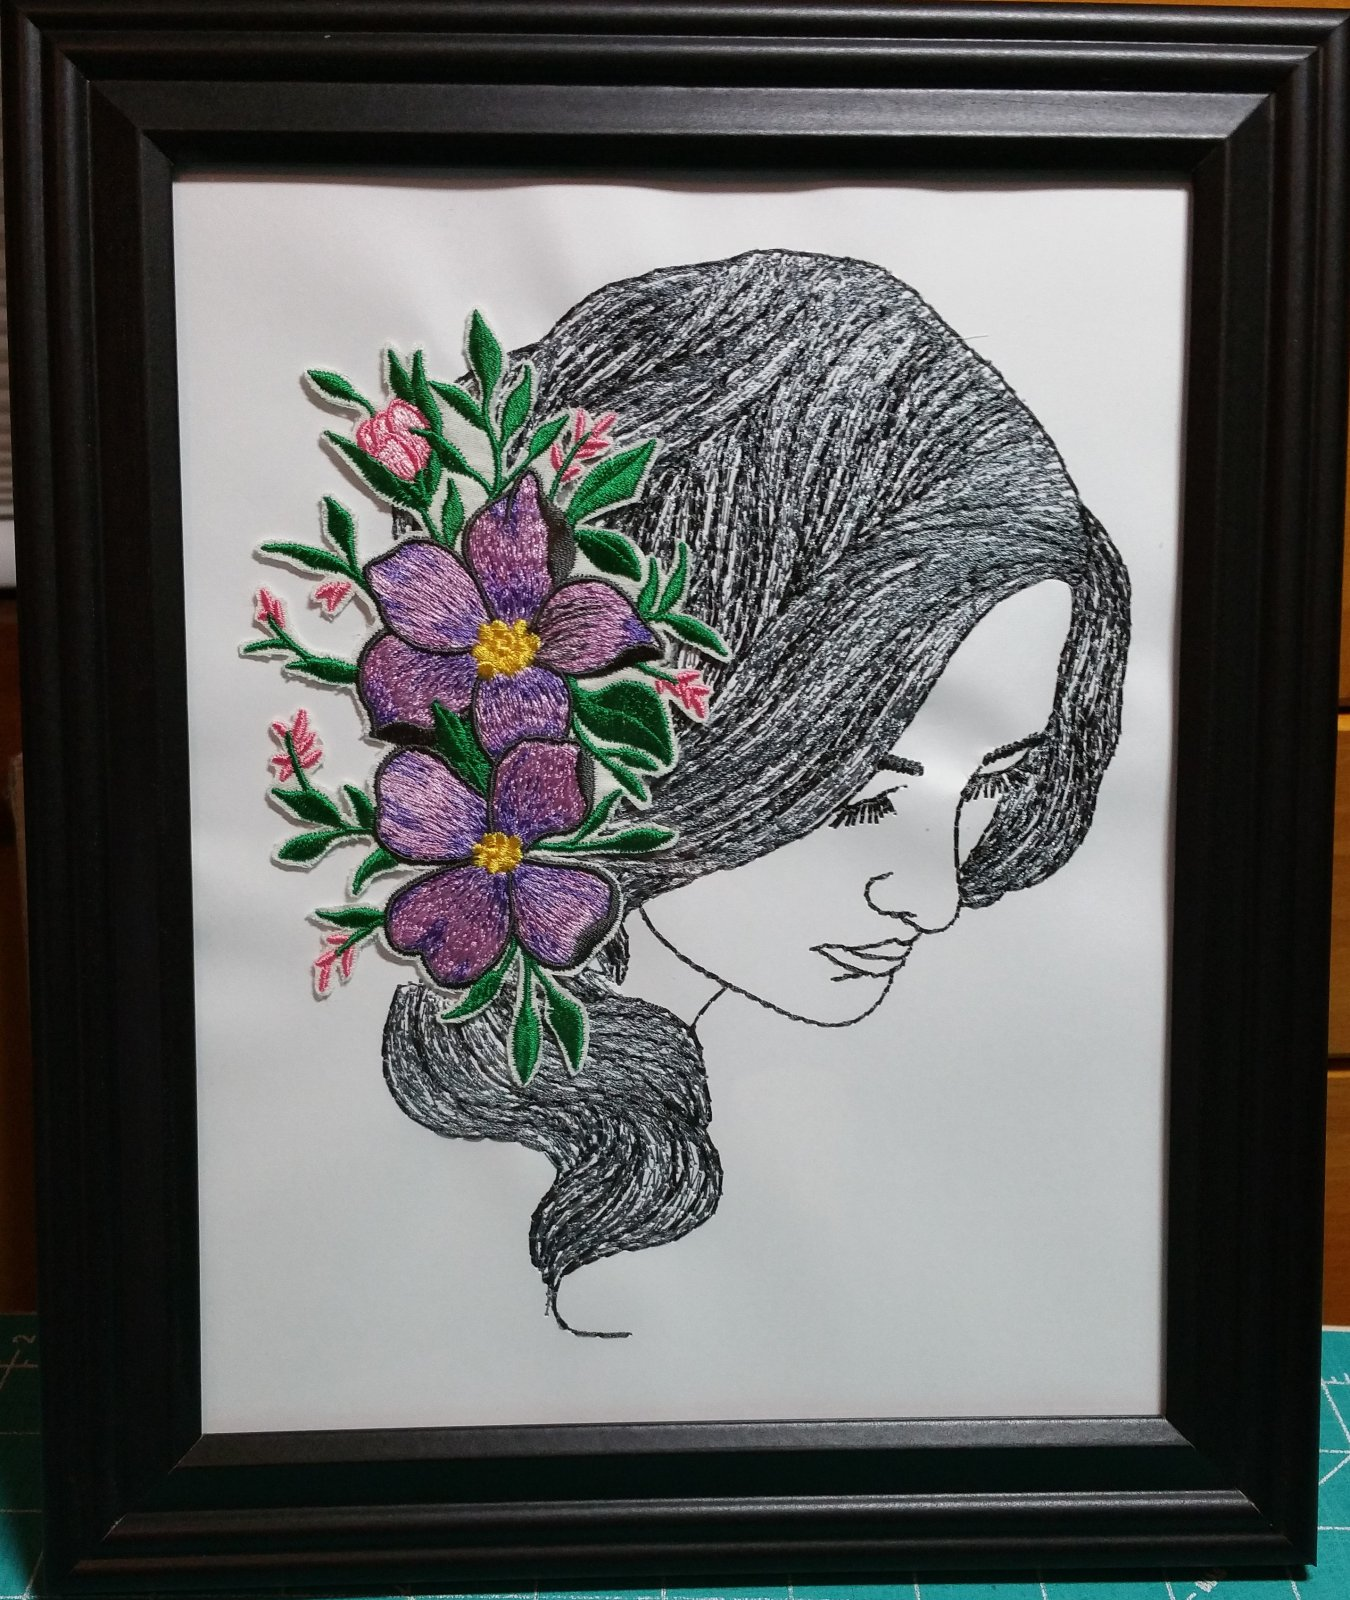 Dimensional Hairstyles Embroidered Picture 5 with frame